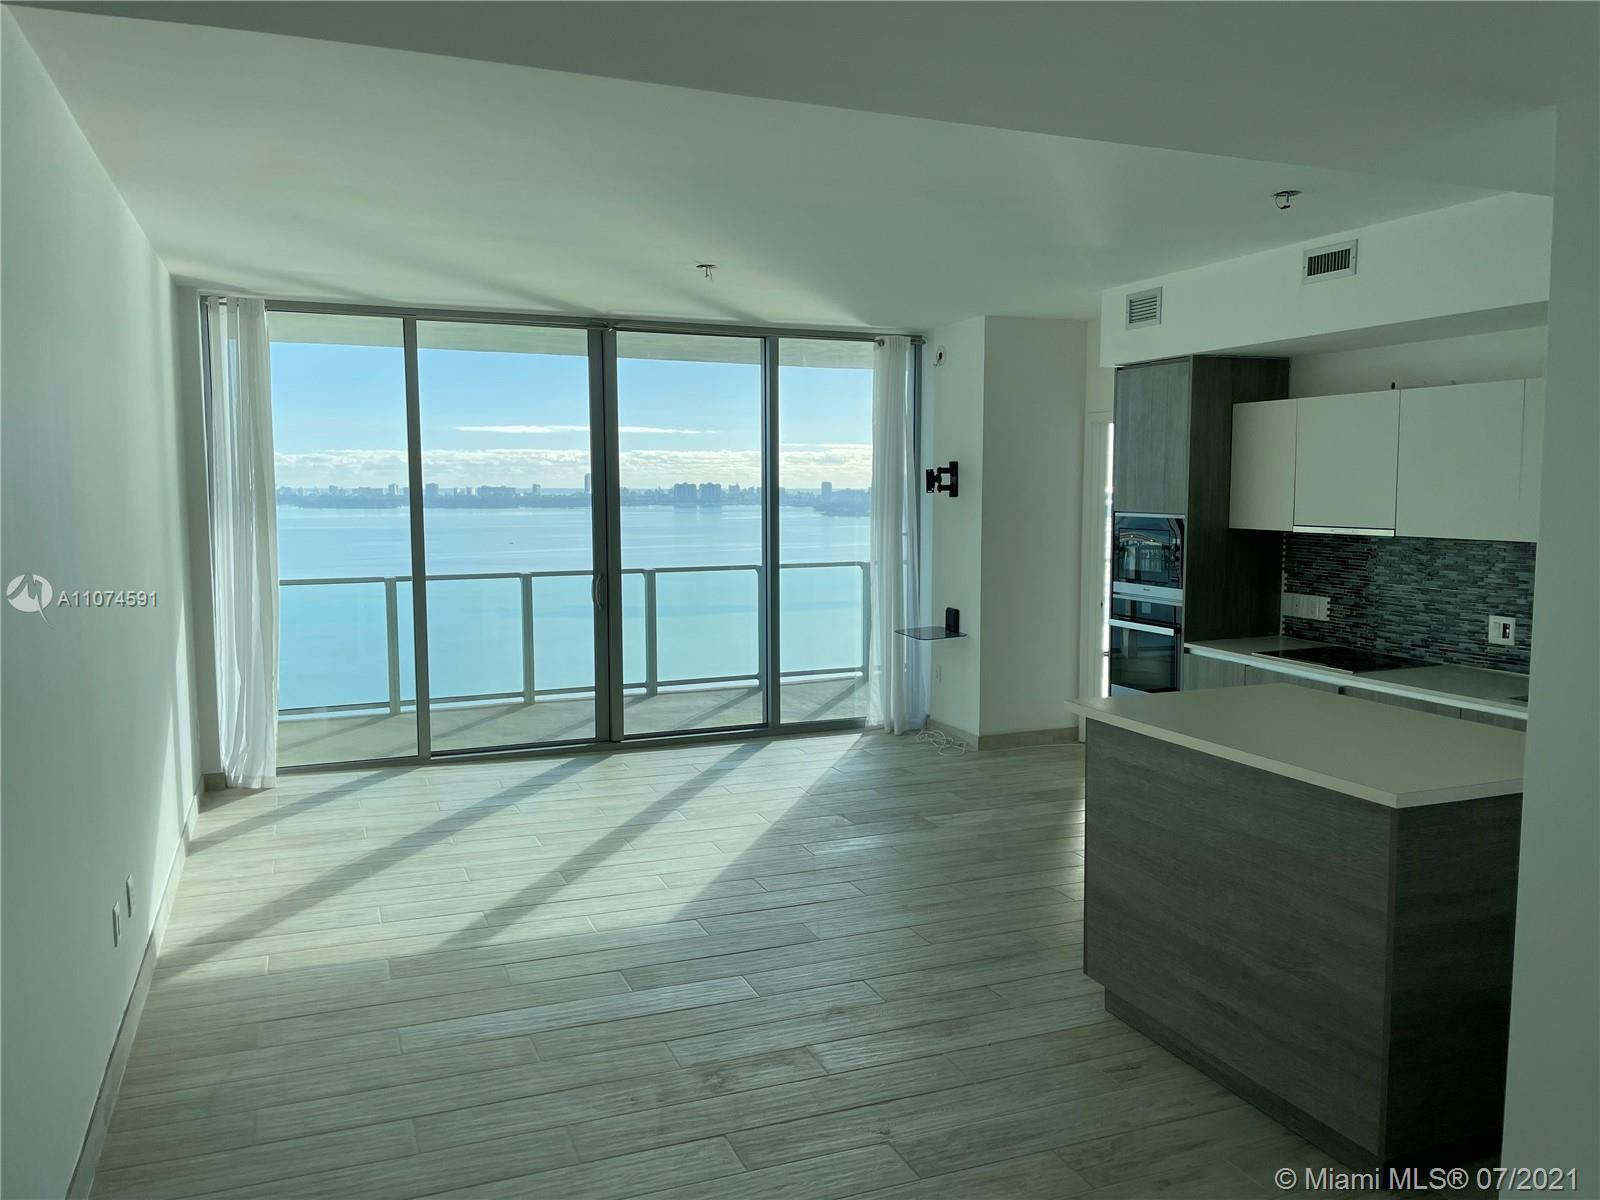 beautiful 2 bedrooms bay view unit in trendy Biscayne beach condo.  Please call or text listing gen